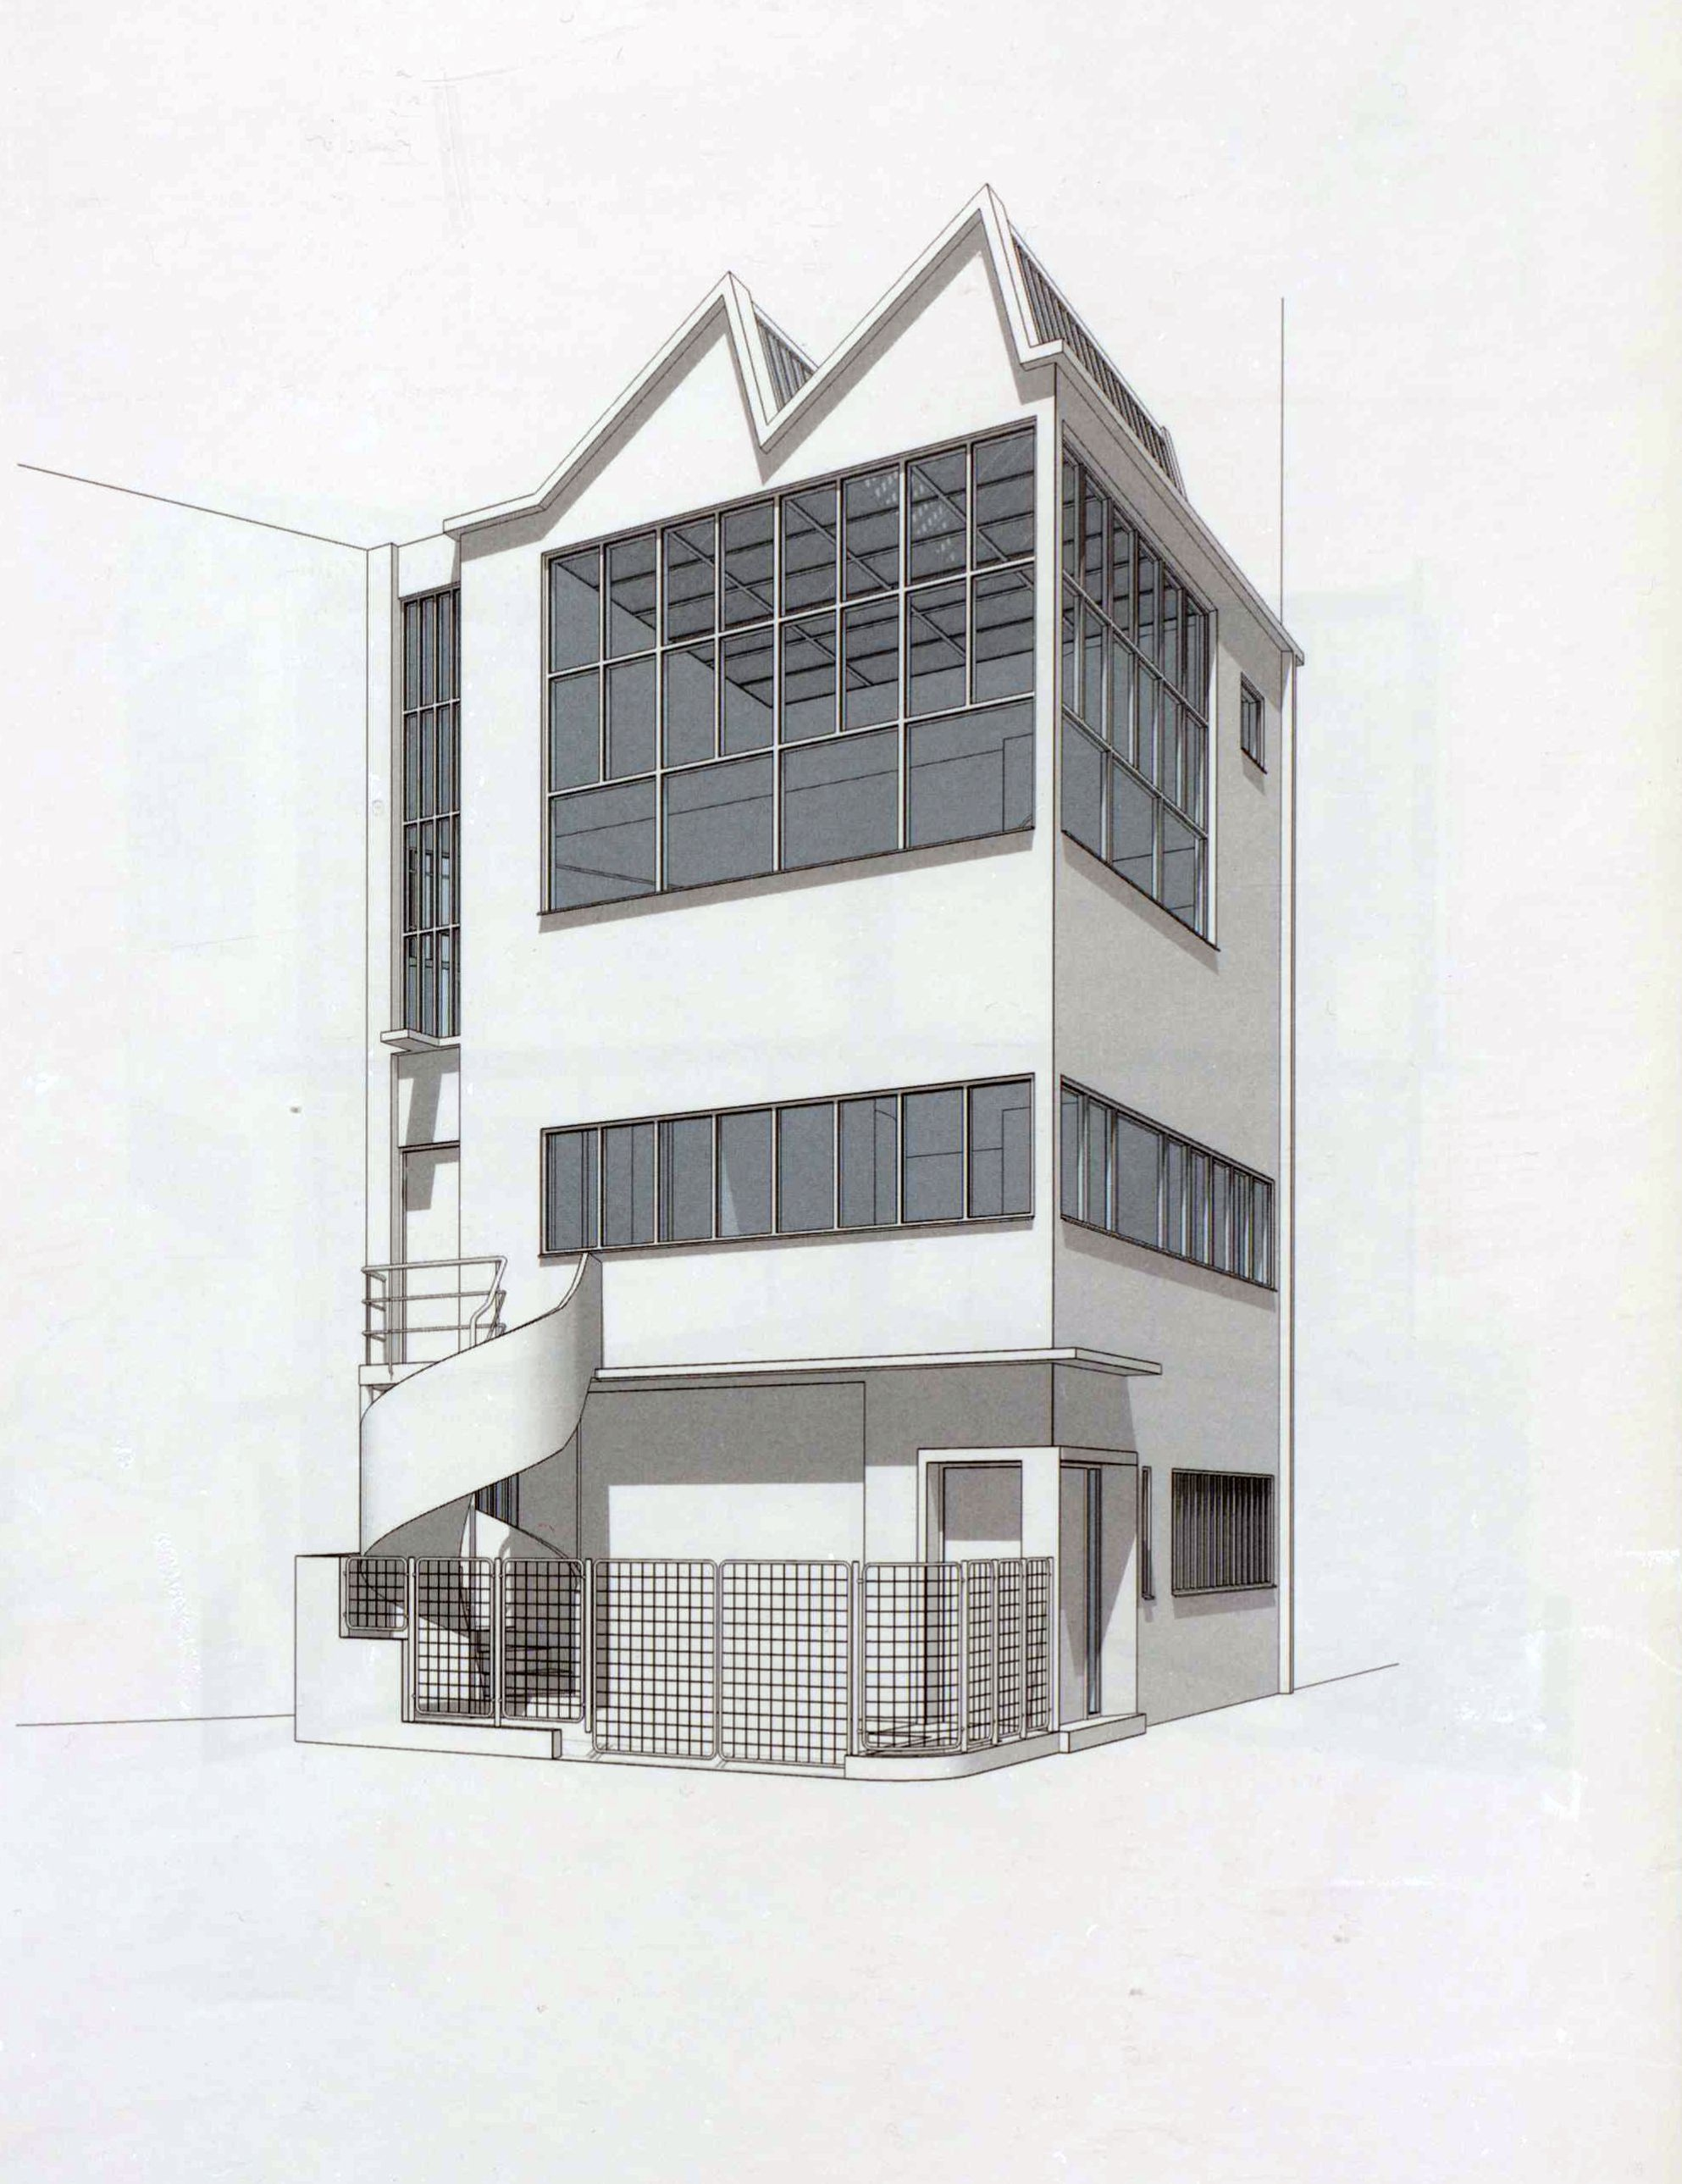 Maison atelier ozenfant drawing le corbusier concept architecture modern architecture design projects